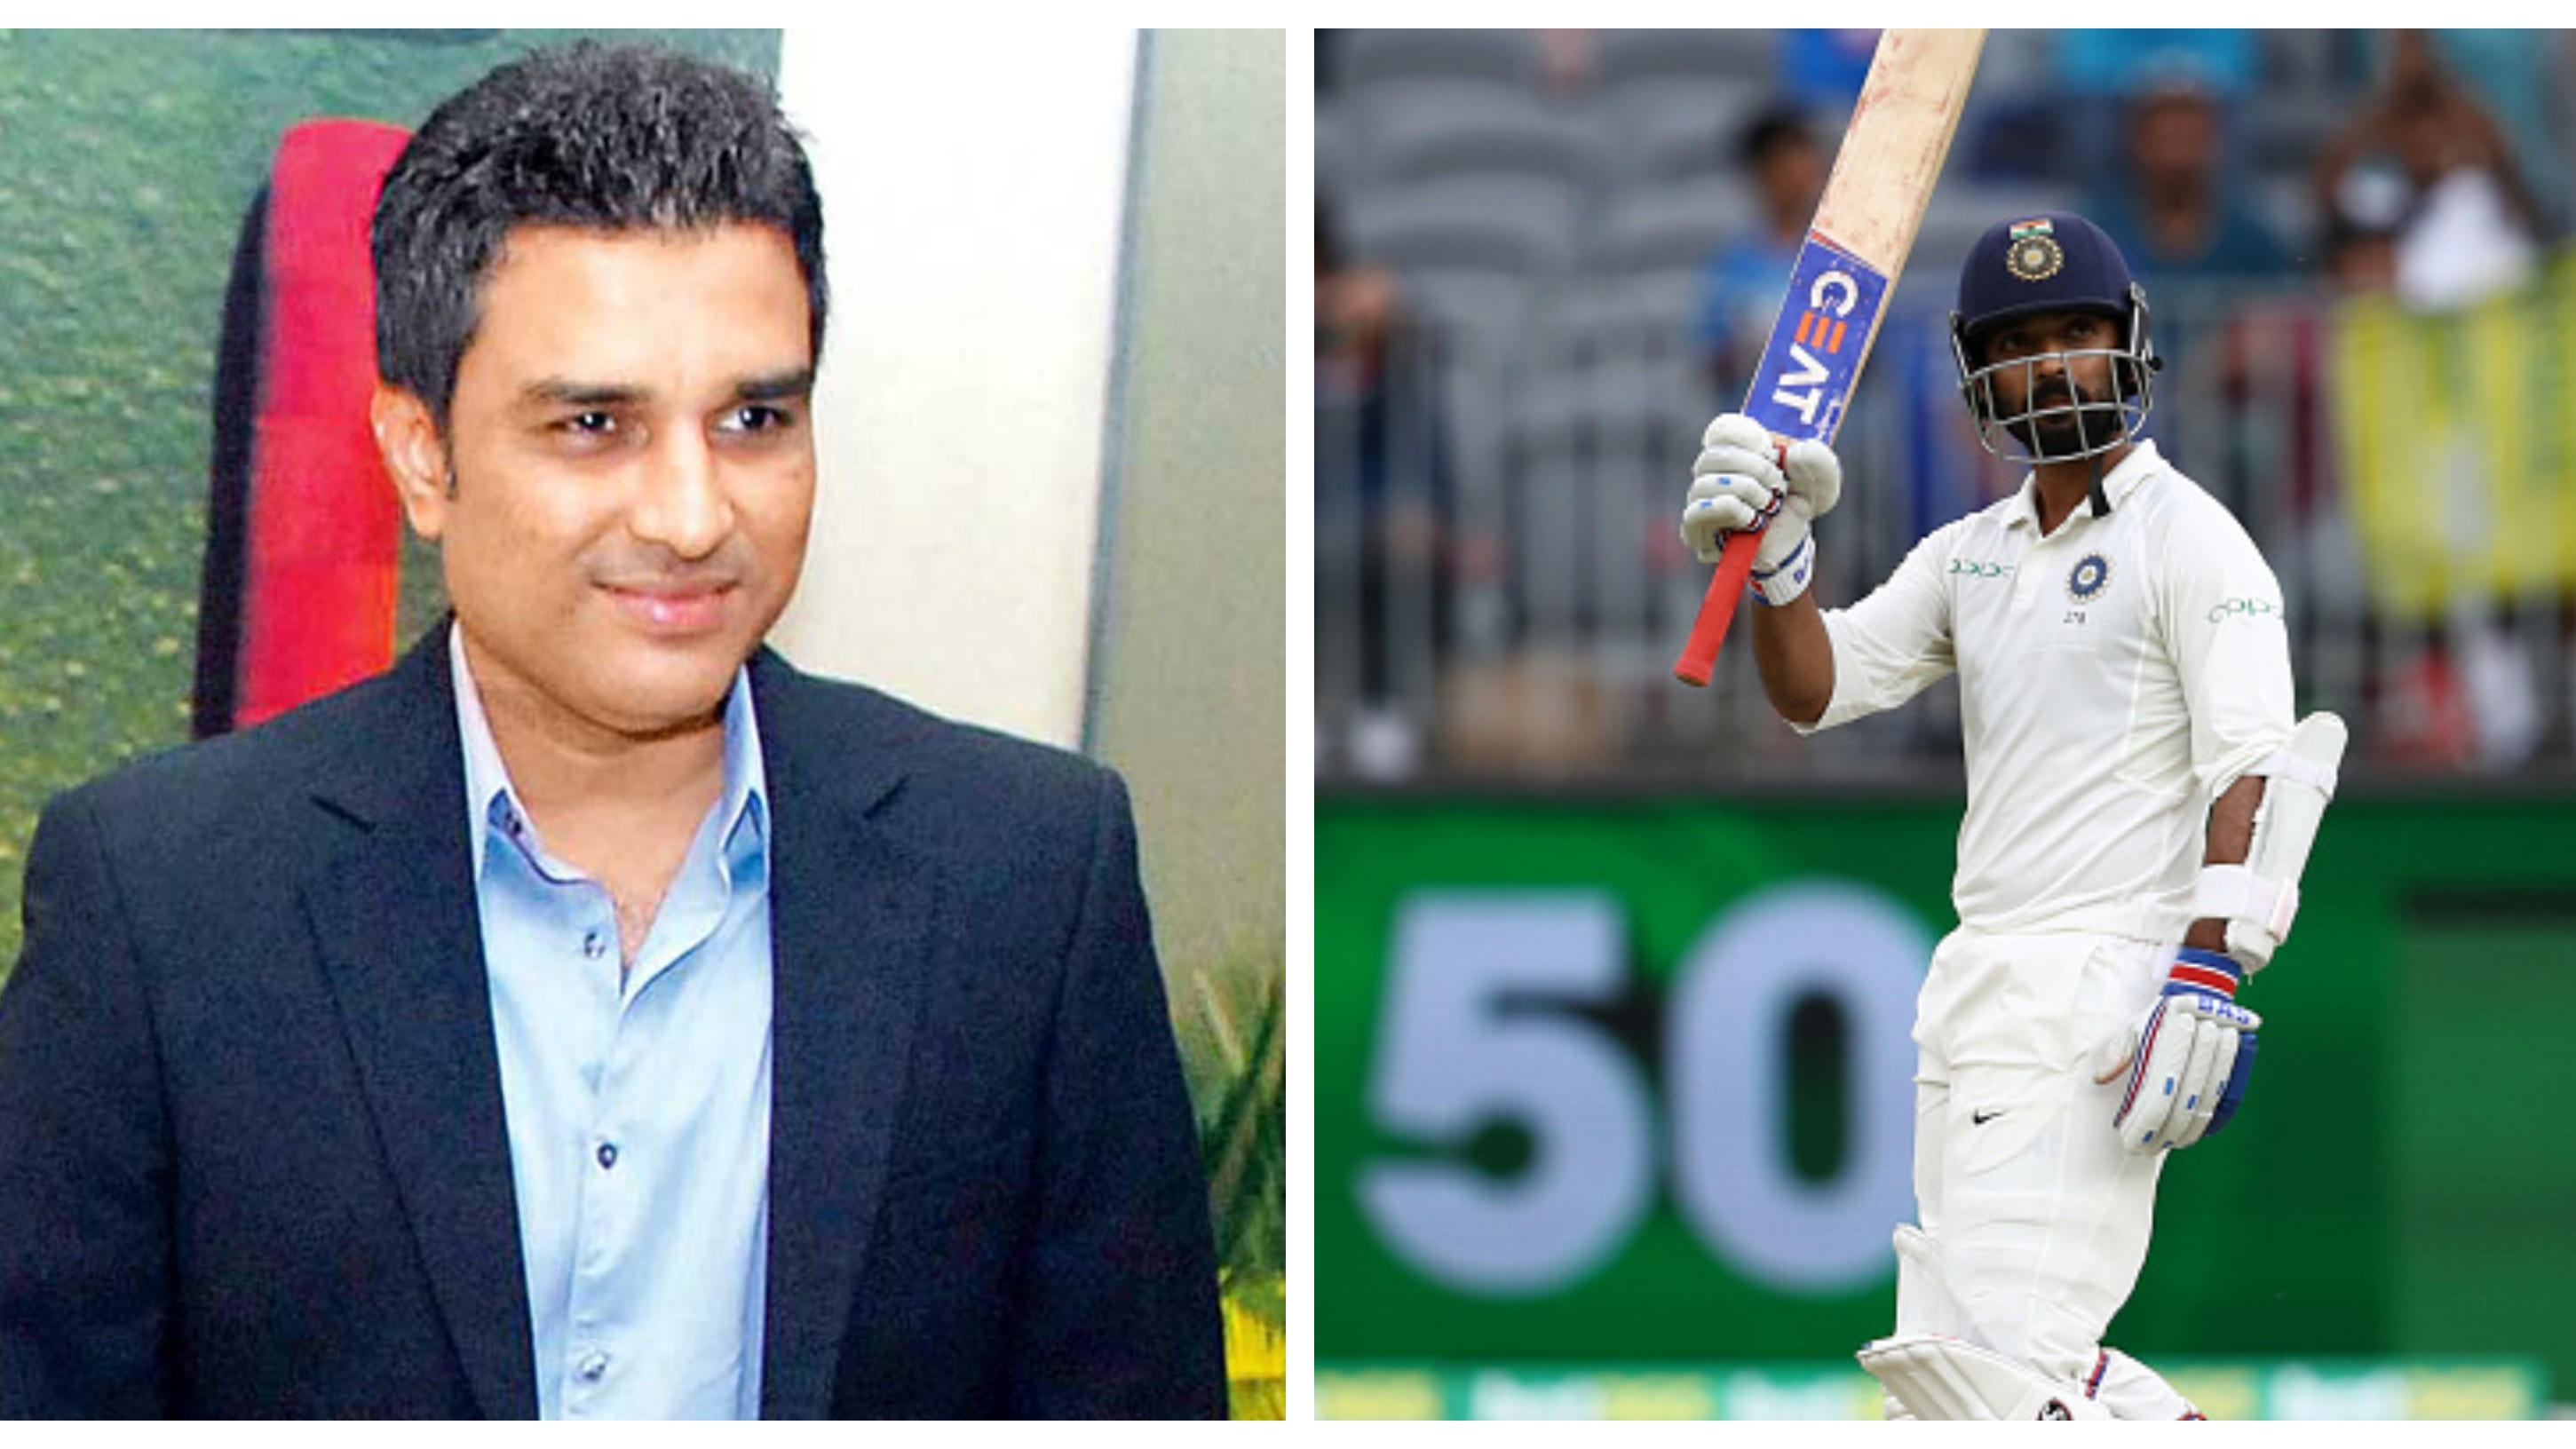 AUS v IND 2018-19: The graph is slowly but surely climbing upwards for Rahane, says Sanjay Manjrekar